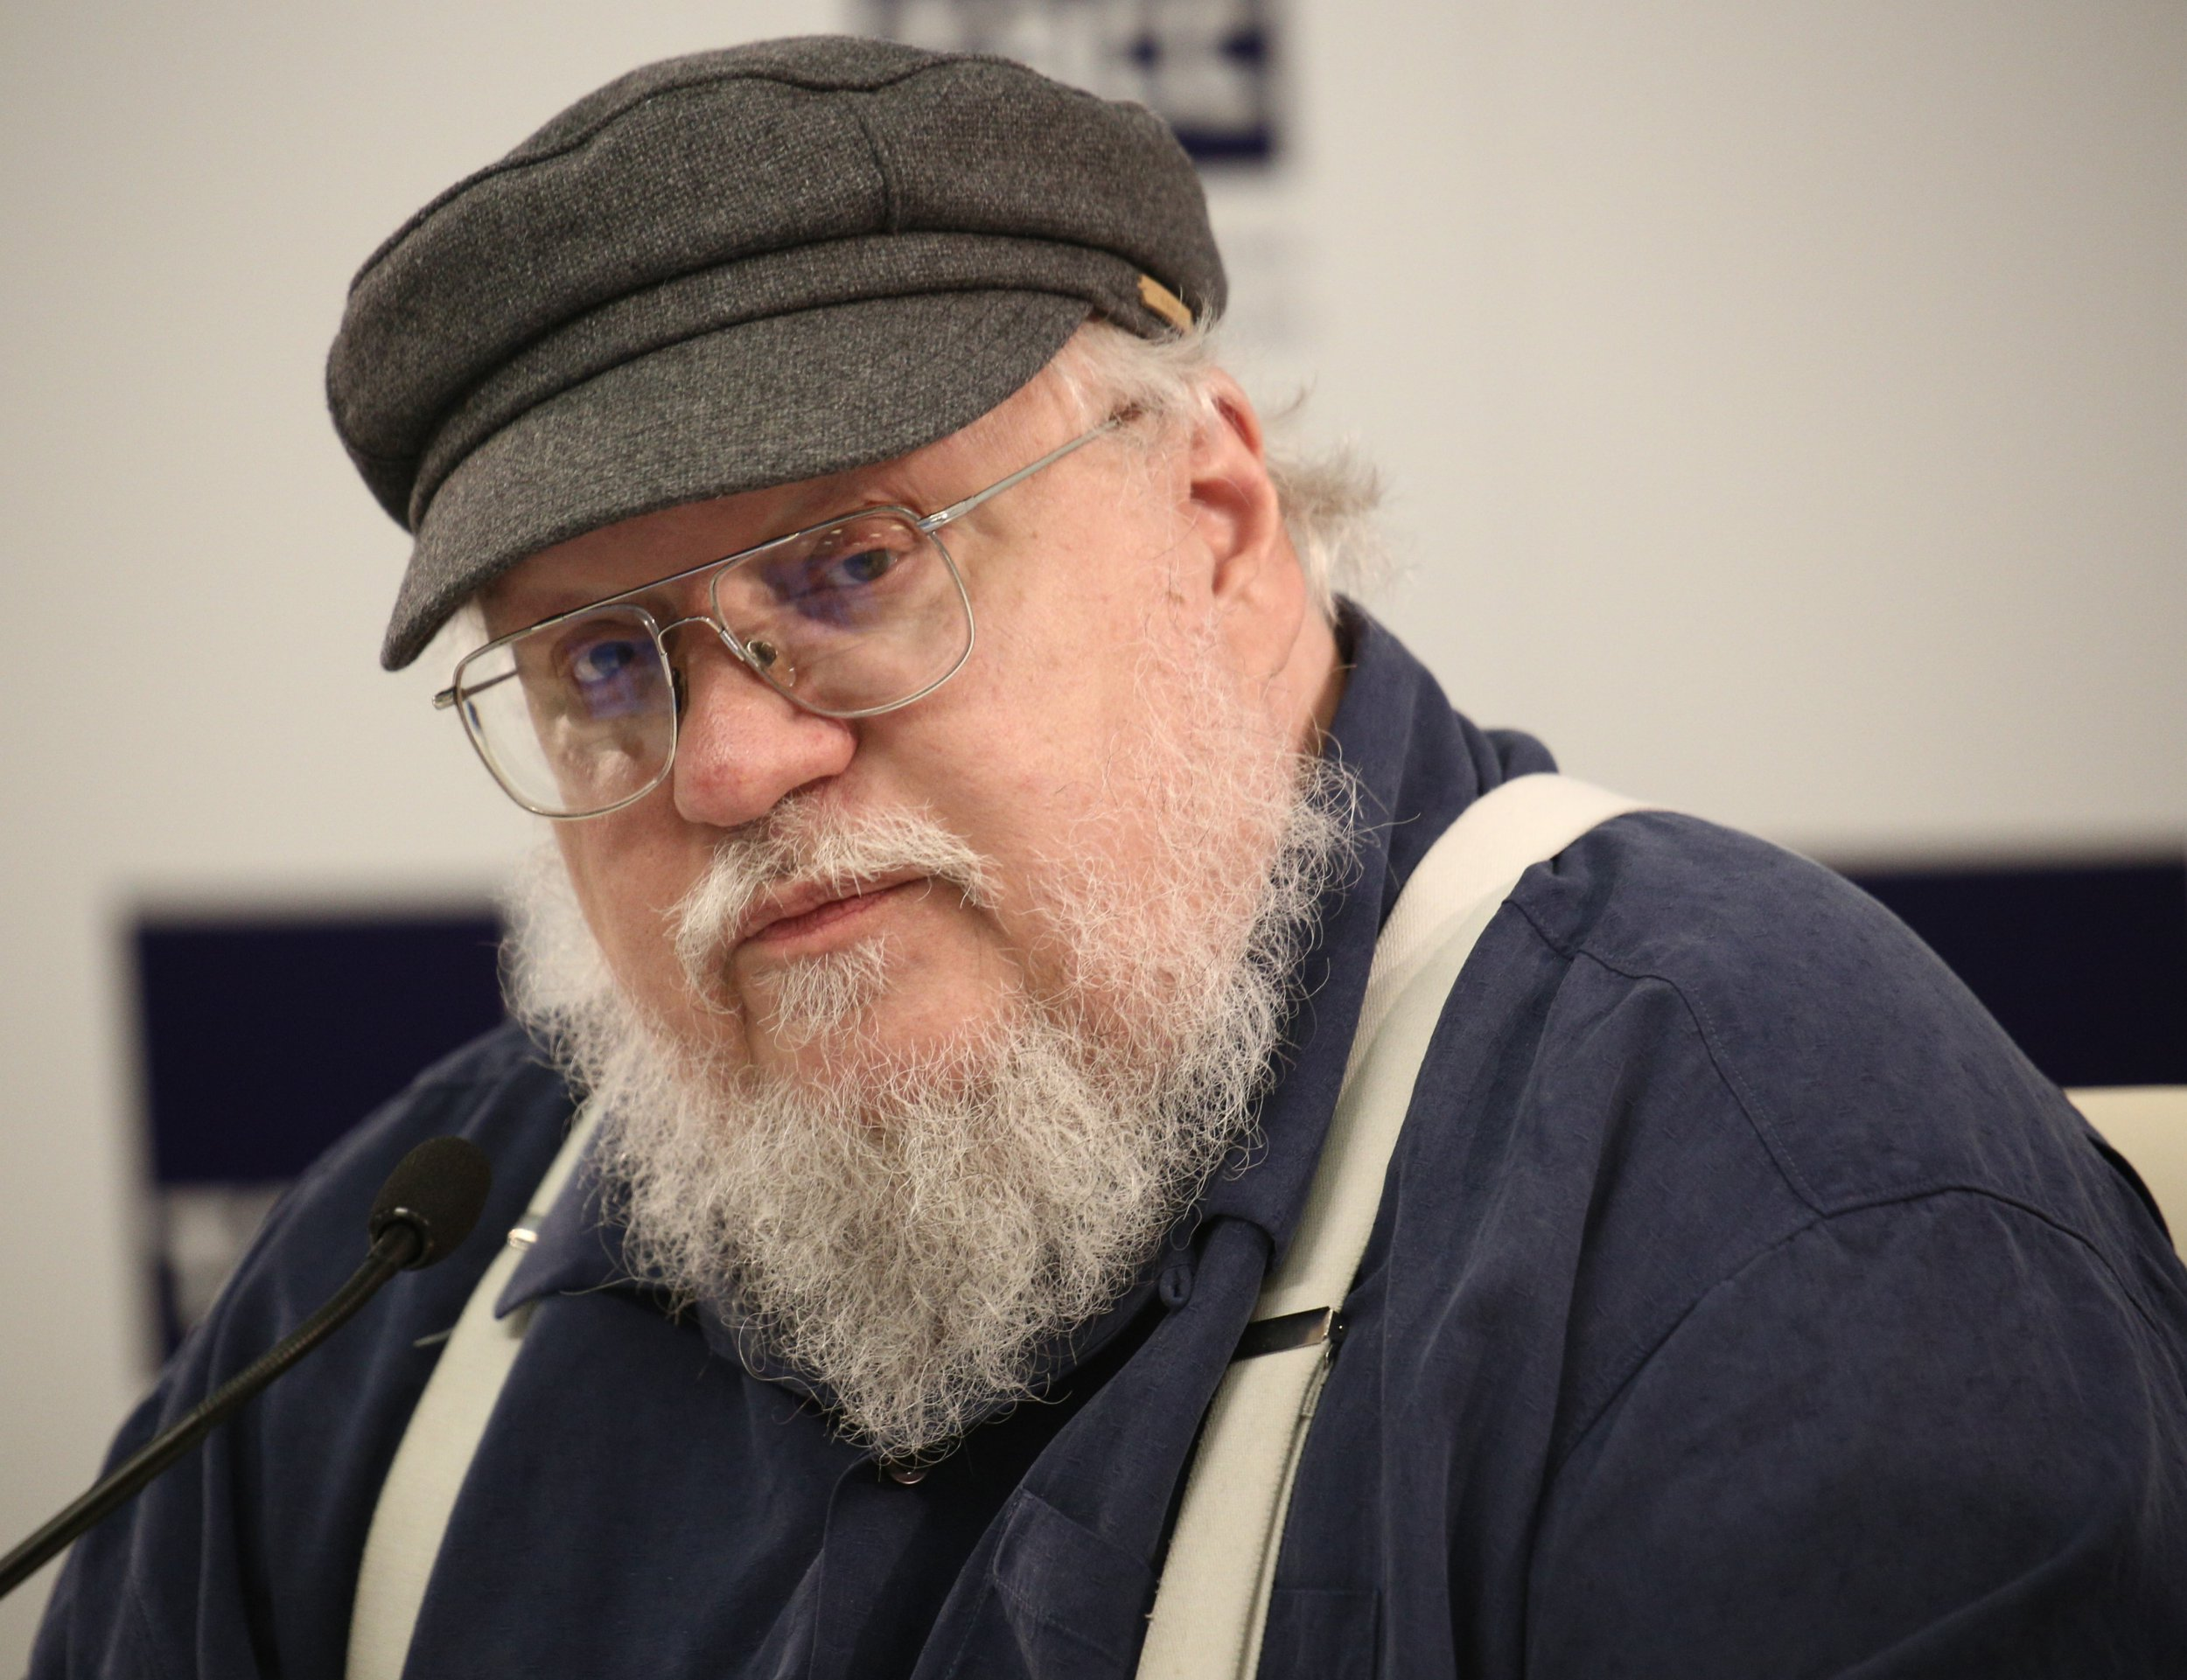 SAINT-PETERSBURG, RUSSIA - AUGUST 16: American writer George R. R. Martin speaks during a press conference in St. Petersburg, Russia on August 16, 2017. (Photo by Sergey Mihailicenko/Anadolu Agency/Getty Images)